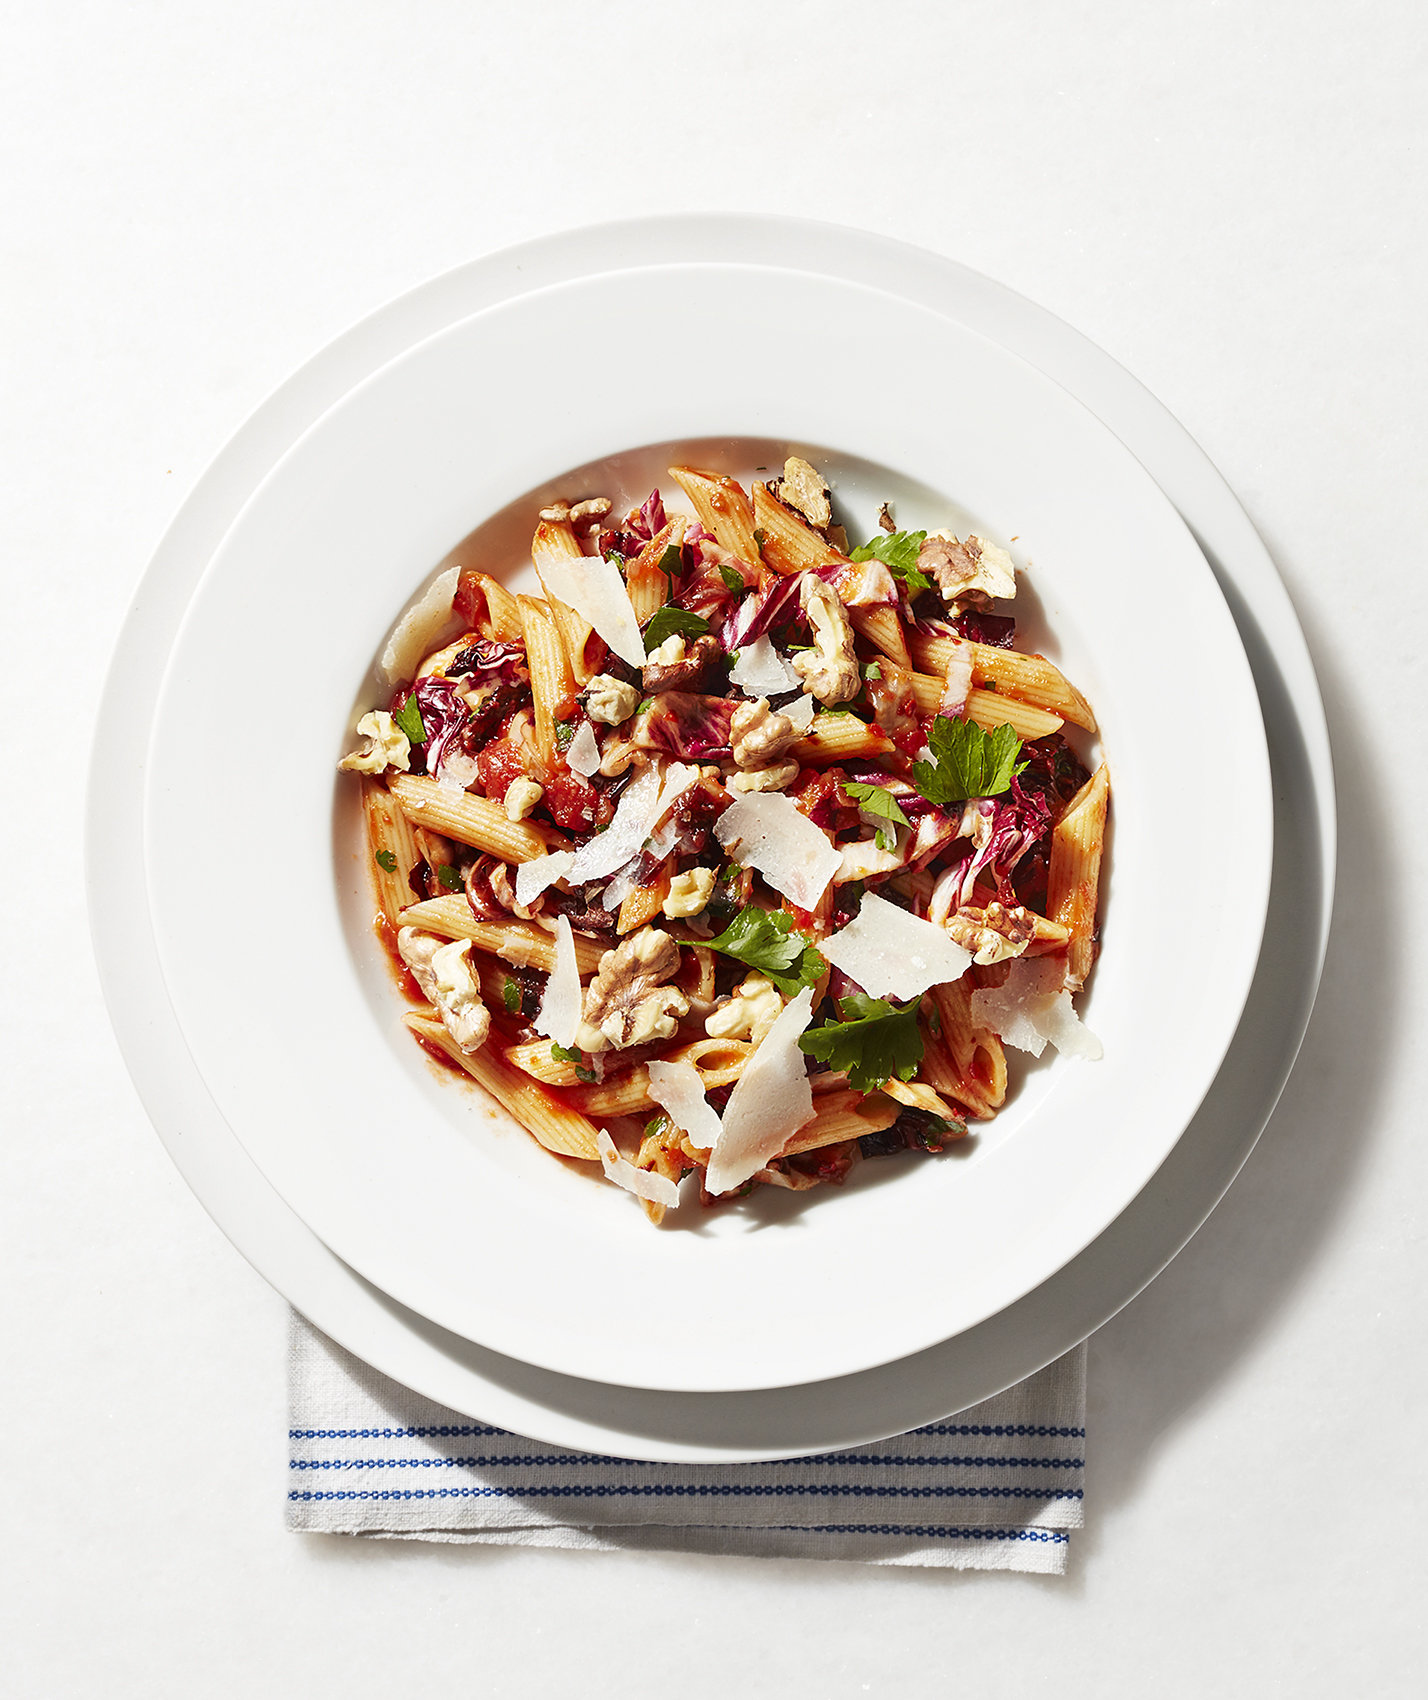 penne-red-sauce-radicchio-walnuts